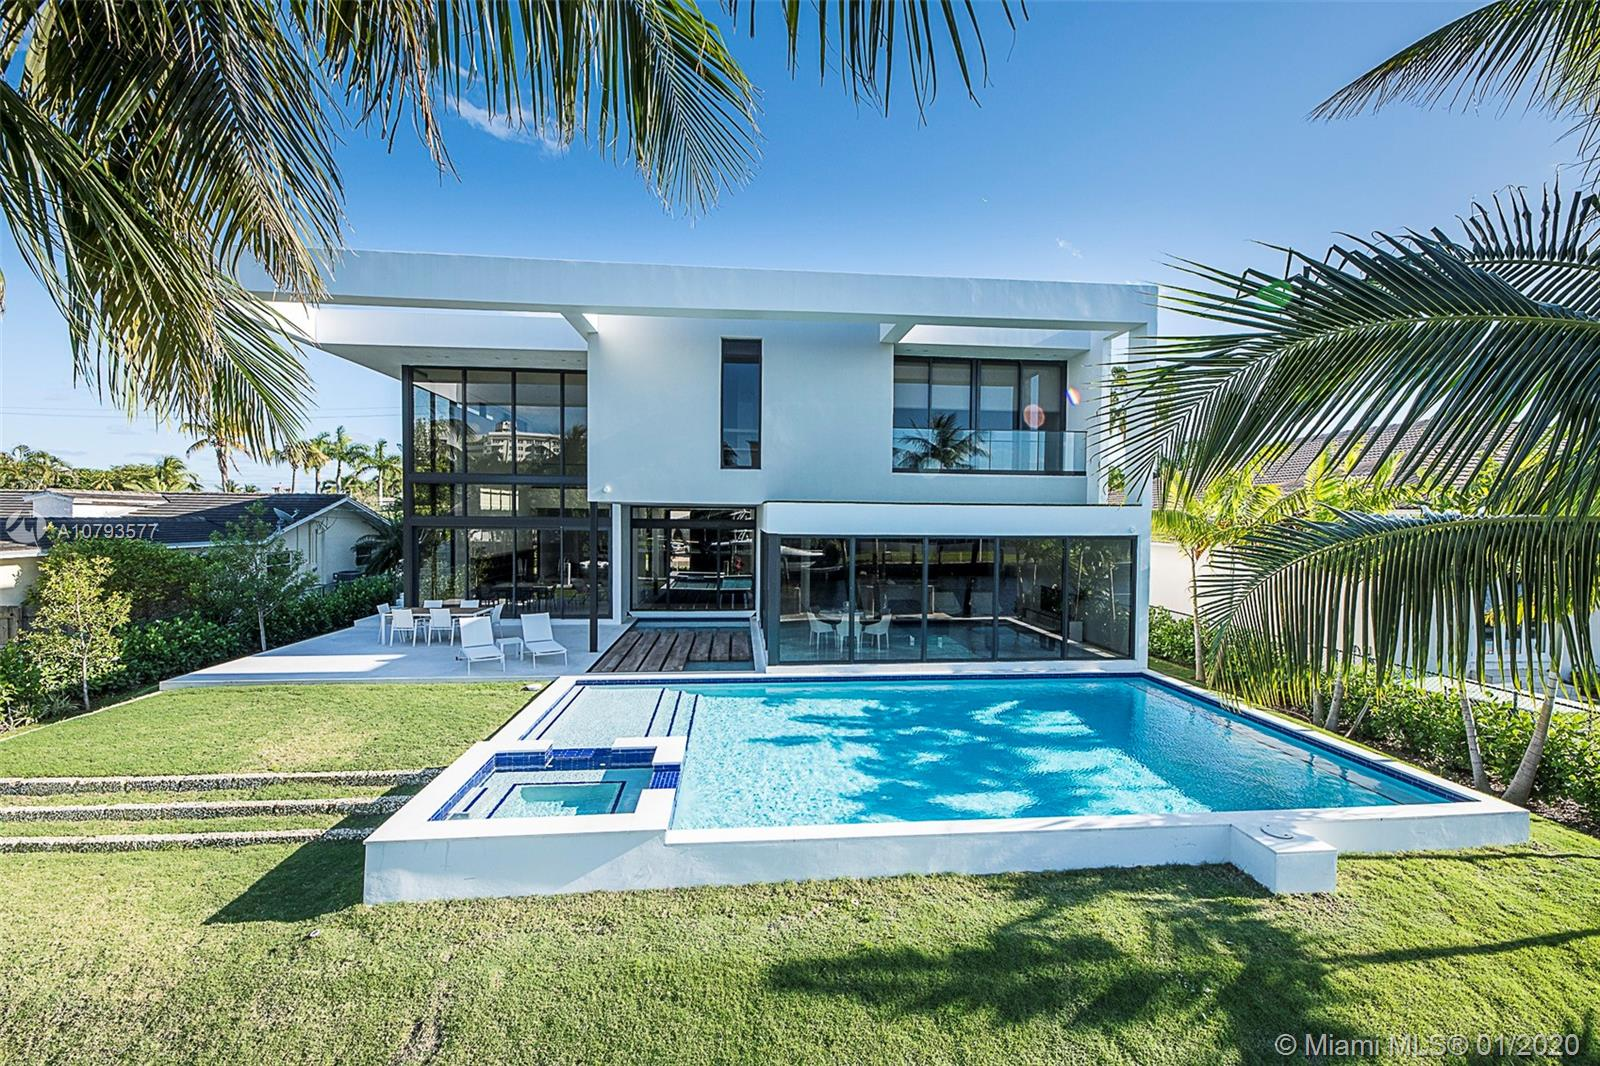 Located on desirable Golden Isles, this exceptionally designed new modern home boasts 6.500 SF of open living space & 85 FT of waterfront. Interior features soaring 24' living room ceilings,6 bedrooms, 6 bathrooms, modern gas kitchen open to the pool with top of the line appliances, 2 dens with the option to make a fitness room or home theater, elevator. Exterior: large pool w/water features & spa, new seawall/dock, & 4-car garage. Interior design by recognized BBH Design Studio. You will fall in LOVE!